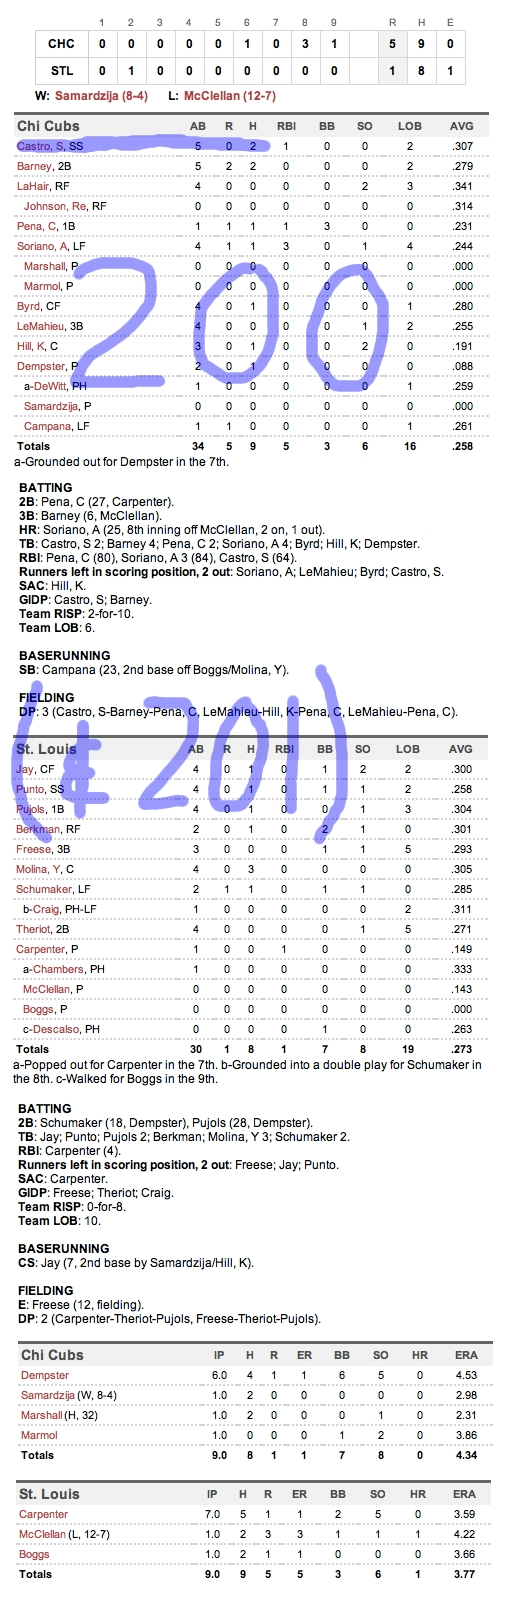 Enhanced Box Score: Cubs 5, Cardinals 1 – September 23, 2011